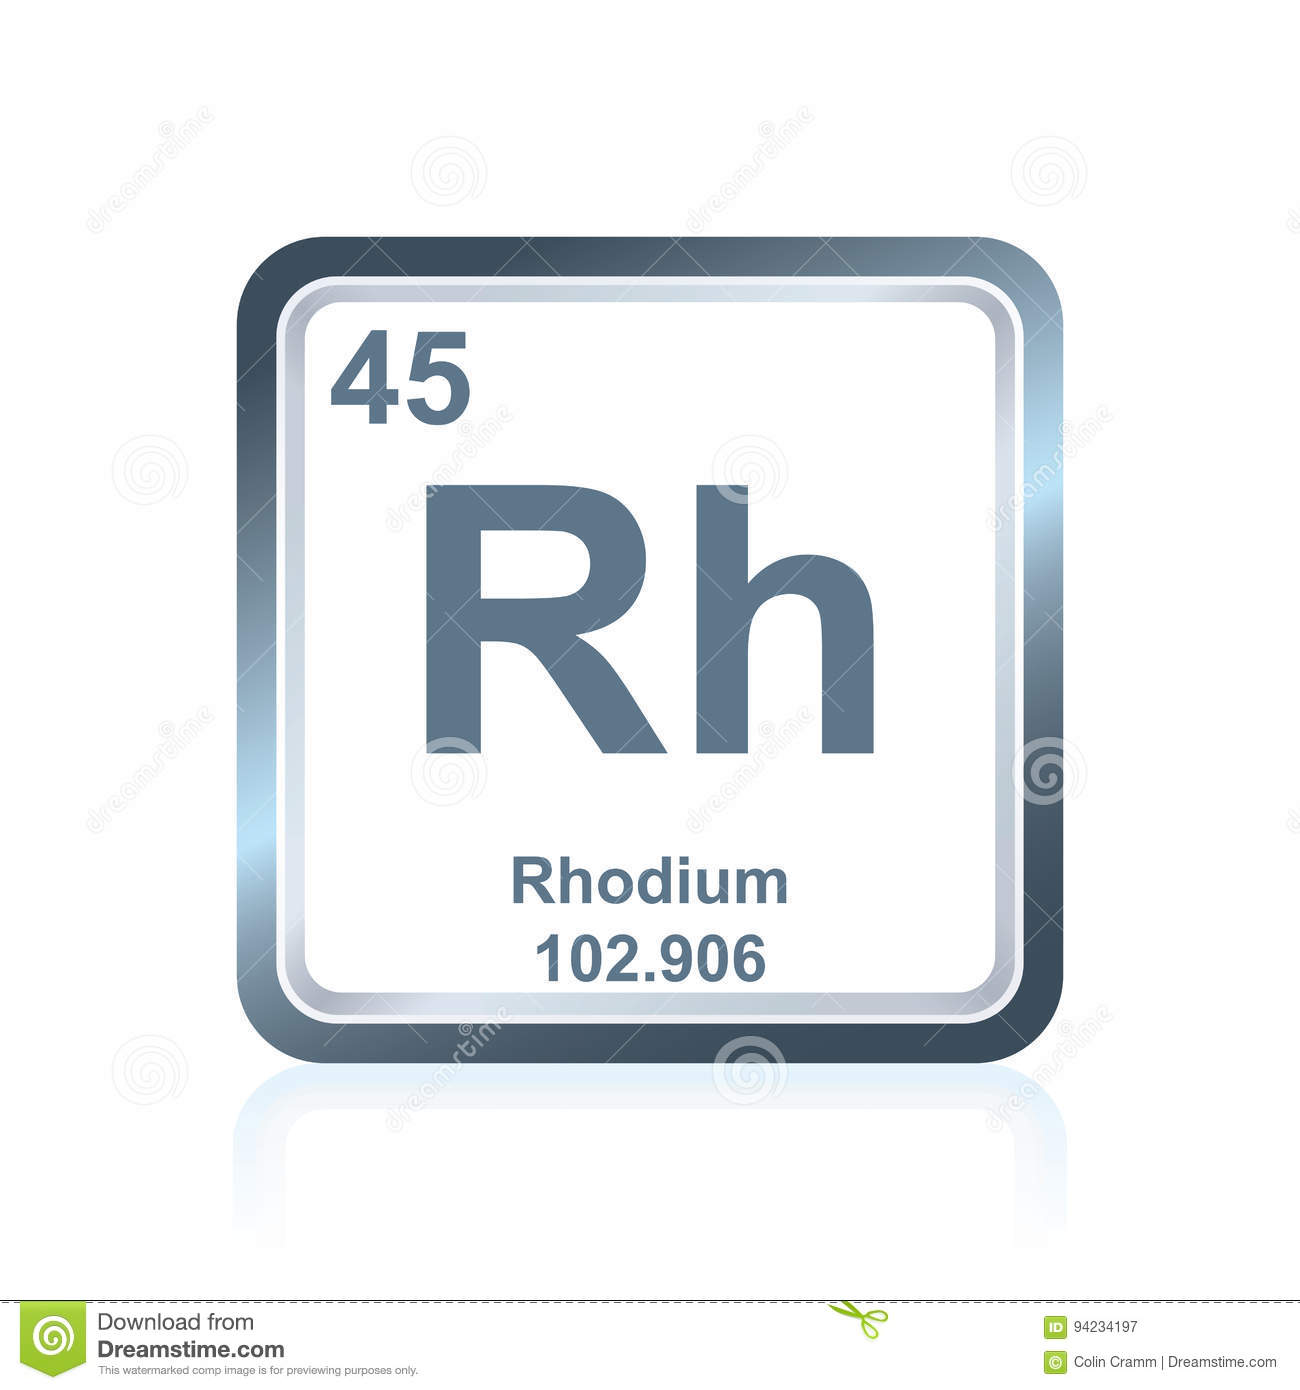 Chemical element rhodium from the periodic table stock illustration chemical element rhodium from the periodic table urtaz Image collections